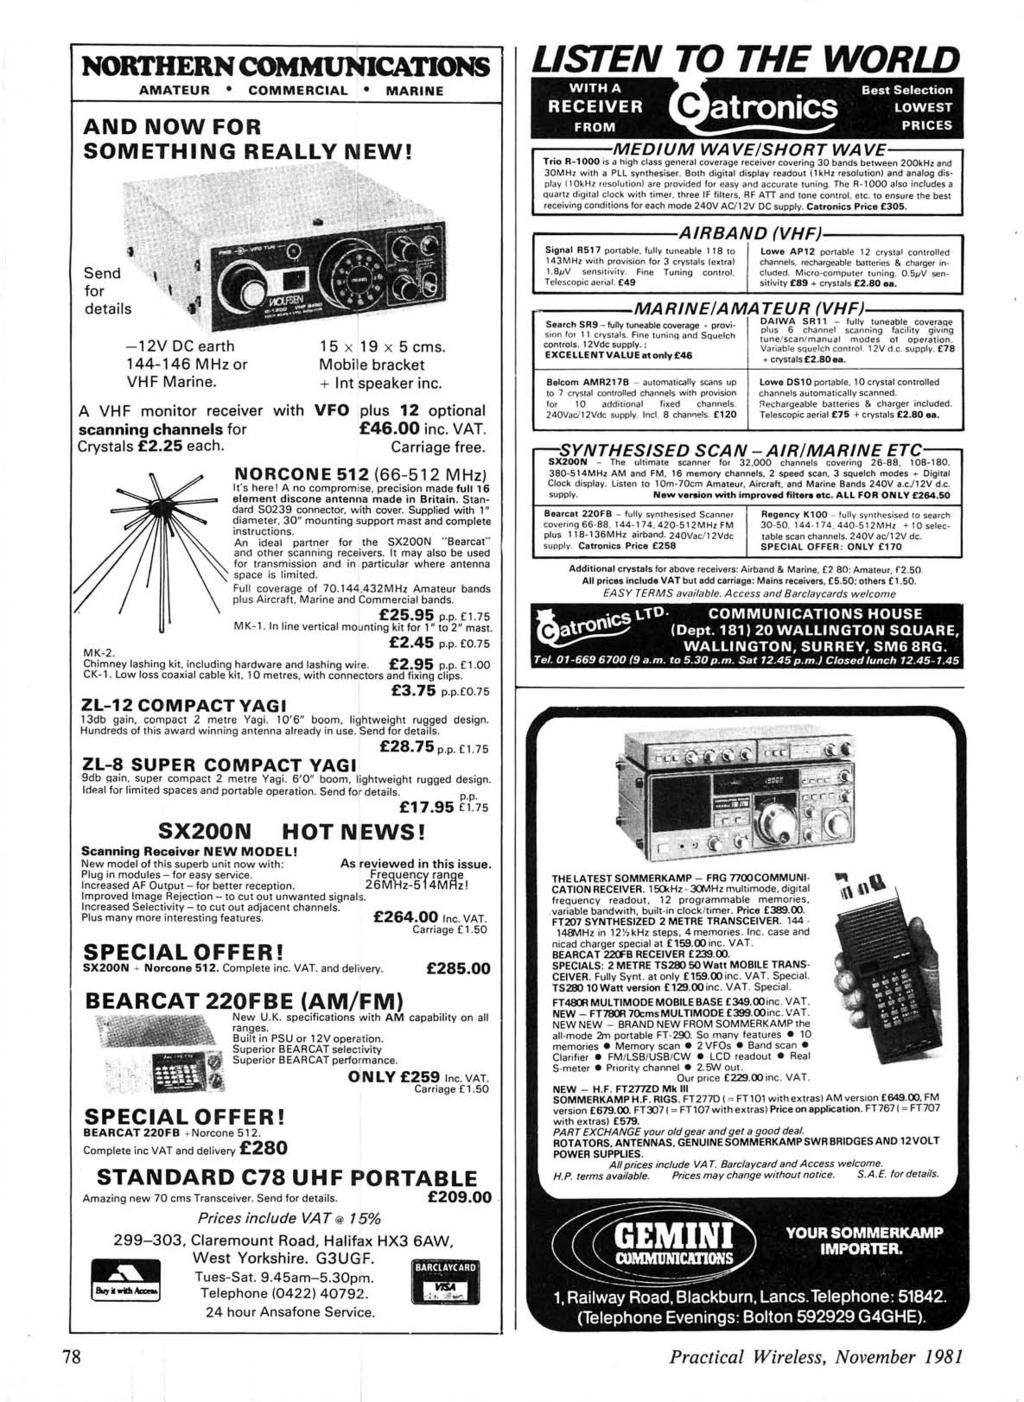 Lcssa Cf Aoic Teams 16m 23 H F Band Fet Preamp With Tone Control By 2n3819 78 Northern Communications Amateur Commercial Marine And Now For Something Real Send Details 12v